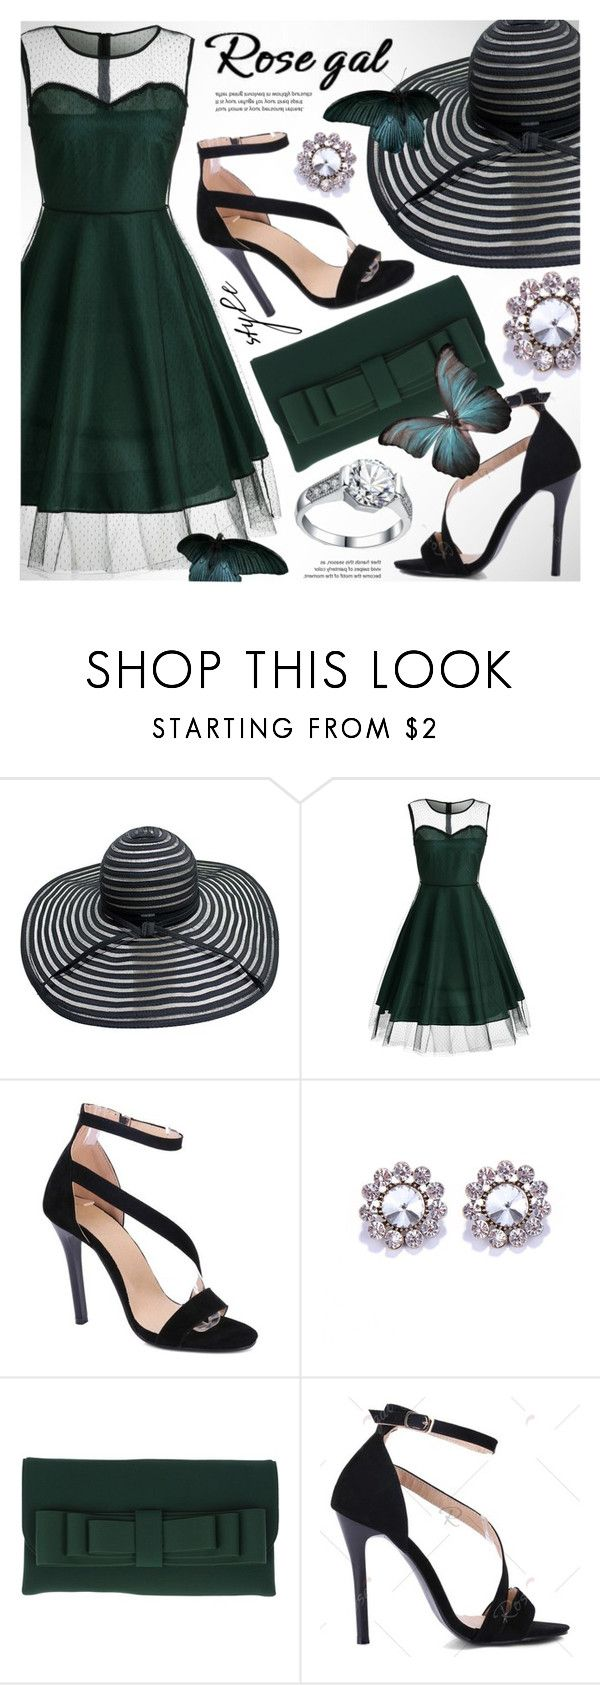 """ROSEGAL chic emerald mesh dress"" by vn1ta ❤ liked on Polyvore featuring La Fille Des Fleurs and Grace"